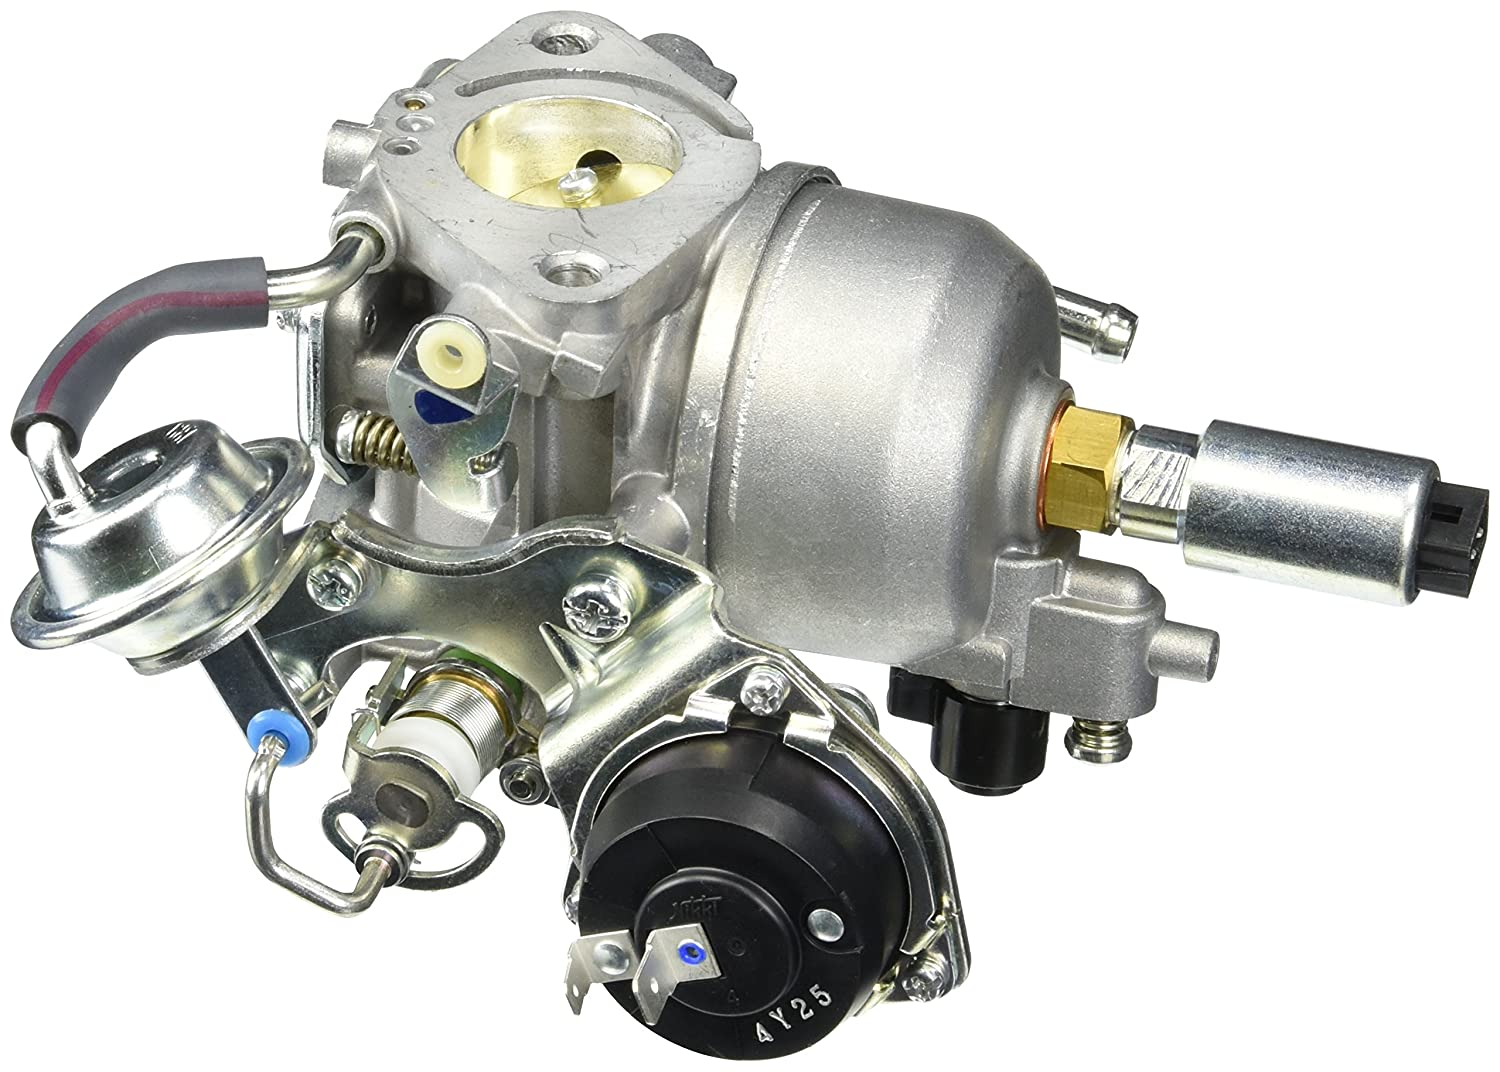 Amazon.com: Cummins 5410765 Onan Carburetor Kit: Automotive